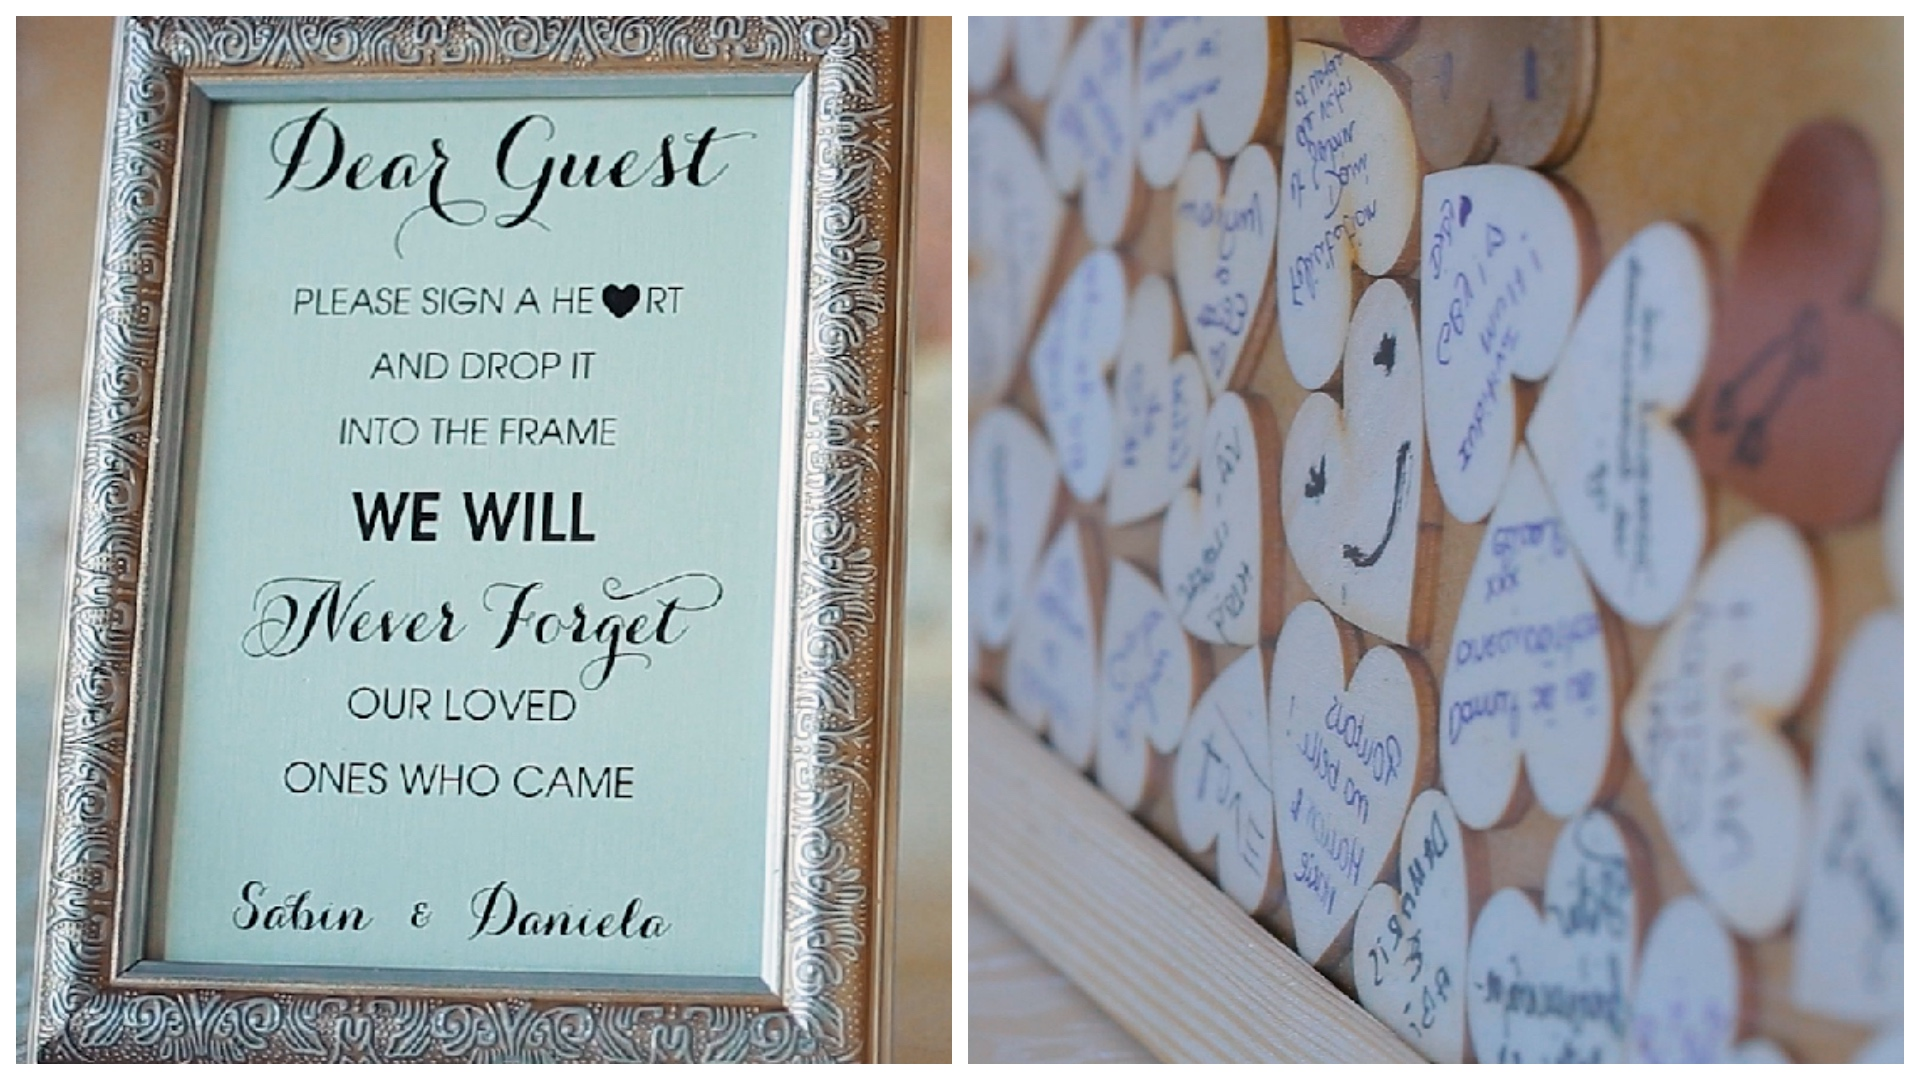 Creative wedding ideas for guests. Leave personalised messages